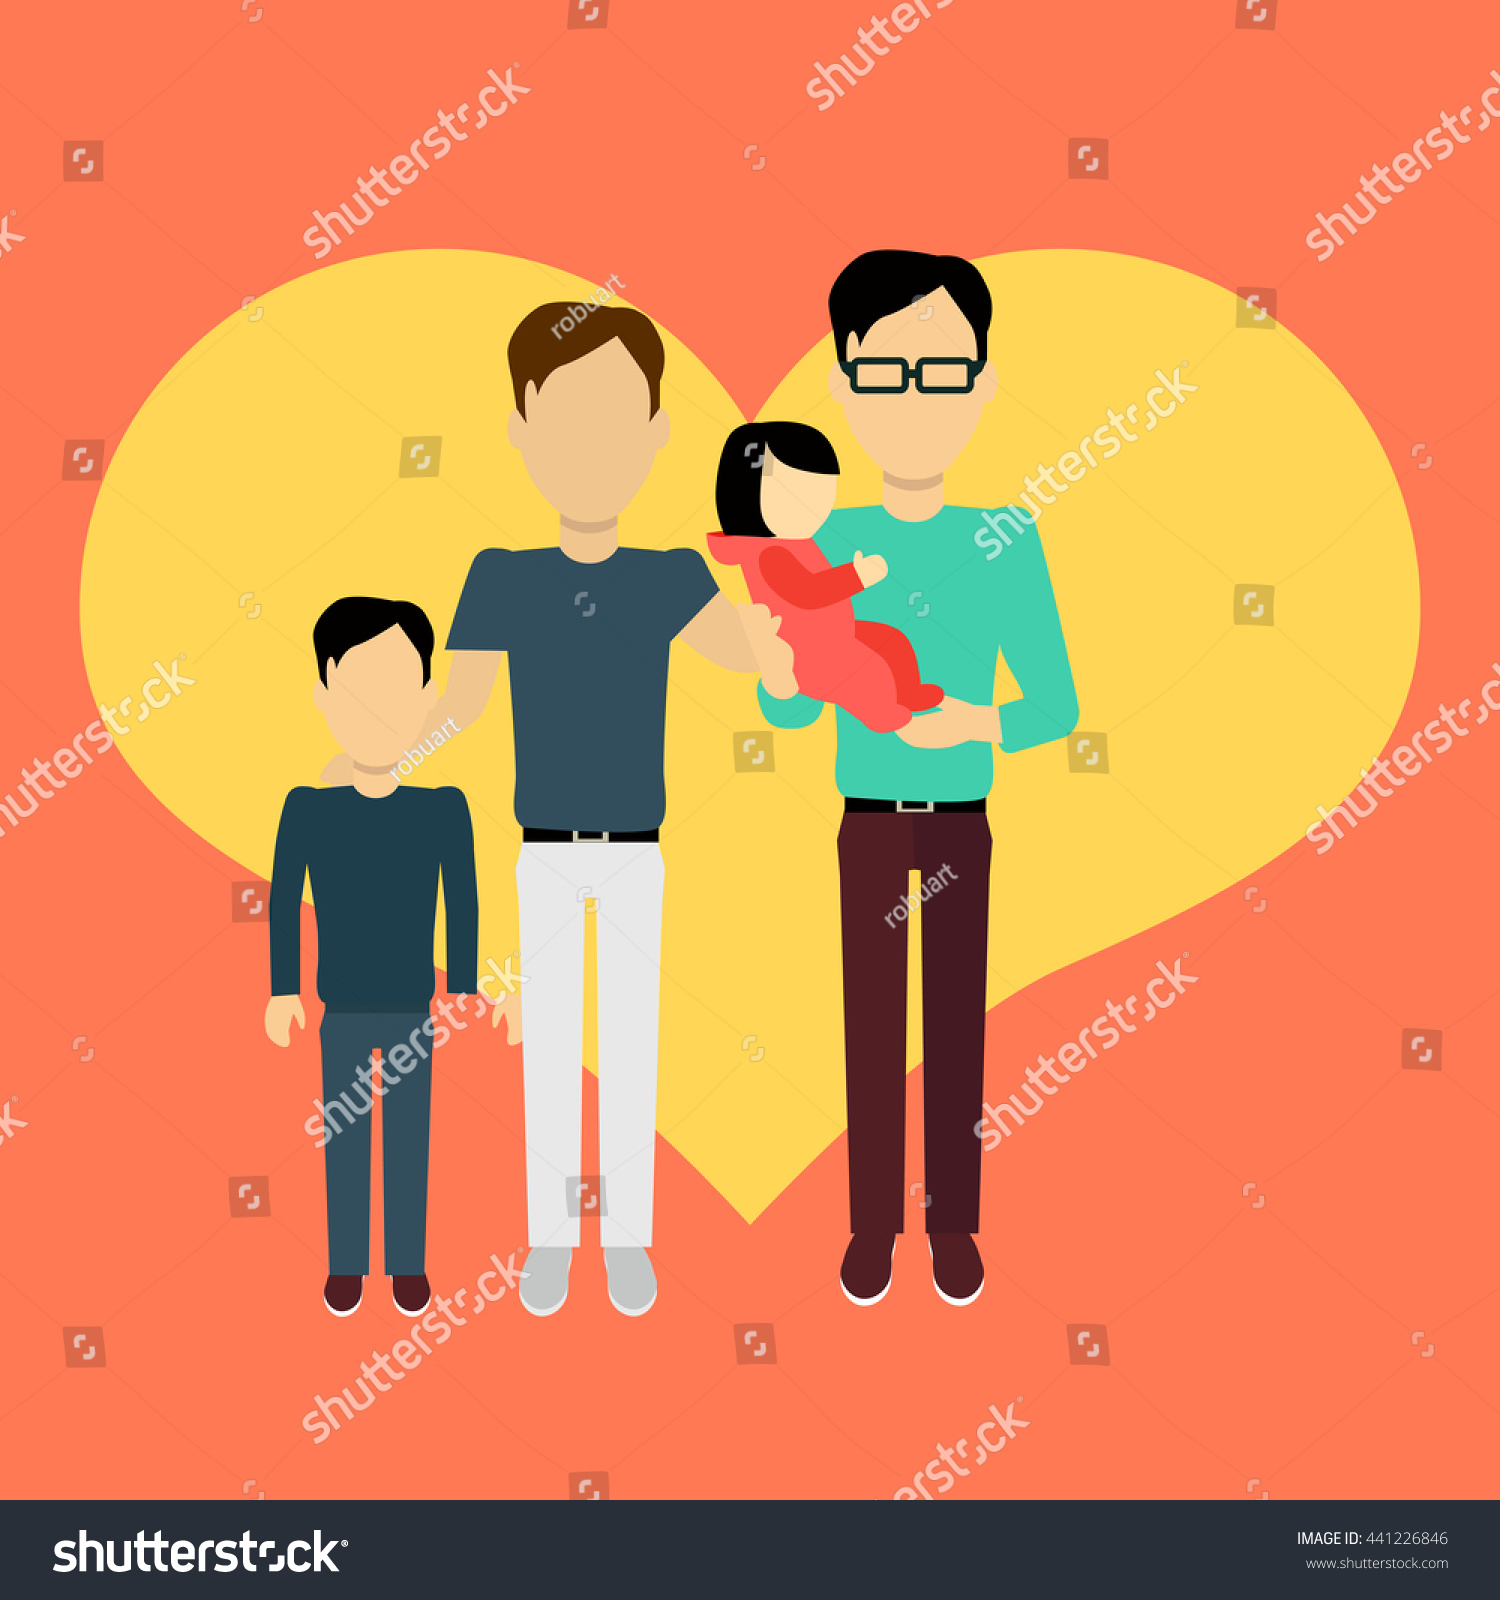 an introduction to the pros of the neonuclear family homosexual couples with children Compares the pros and cons of homosexuals and homosexual couples adopting children—the as much like the nuclear family as adoption of children by.